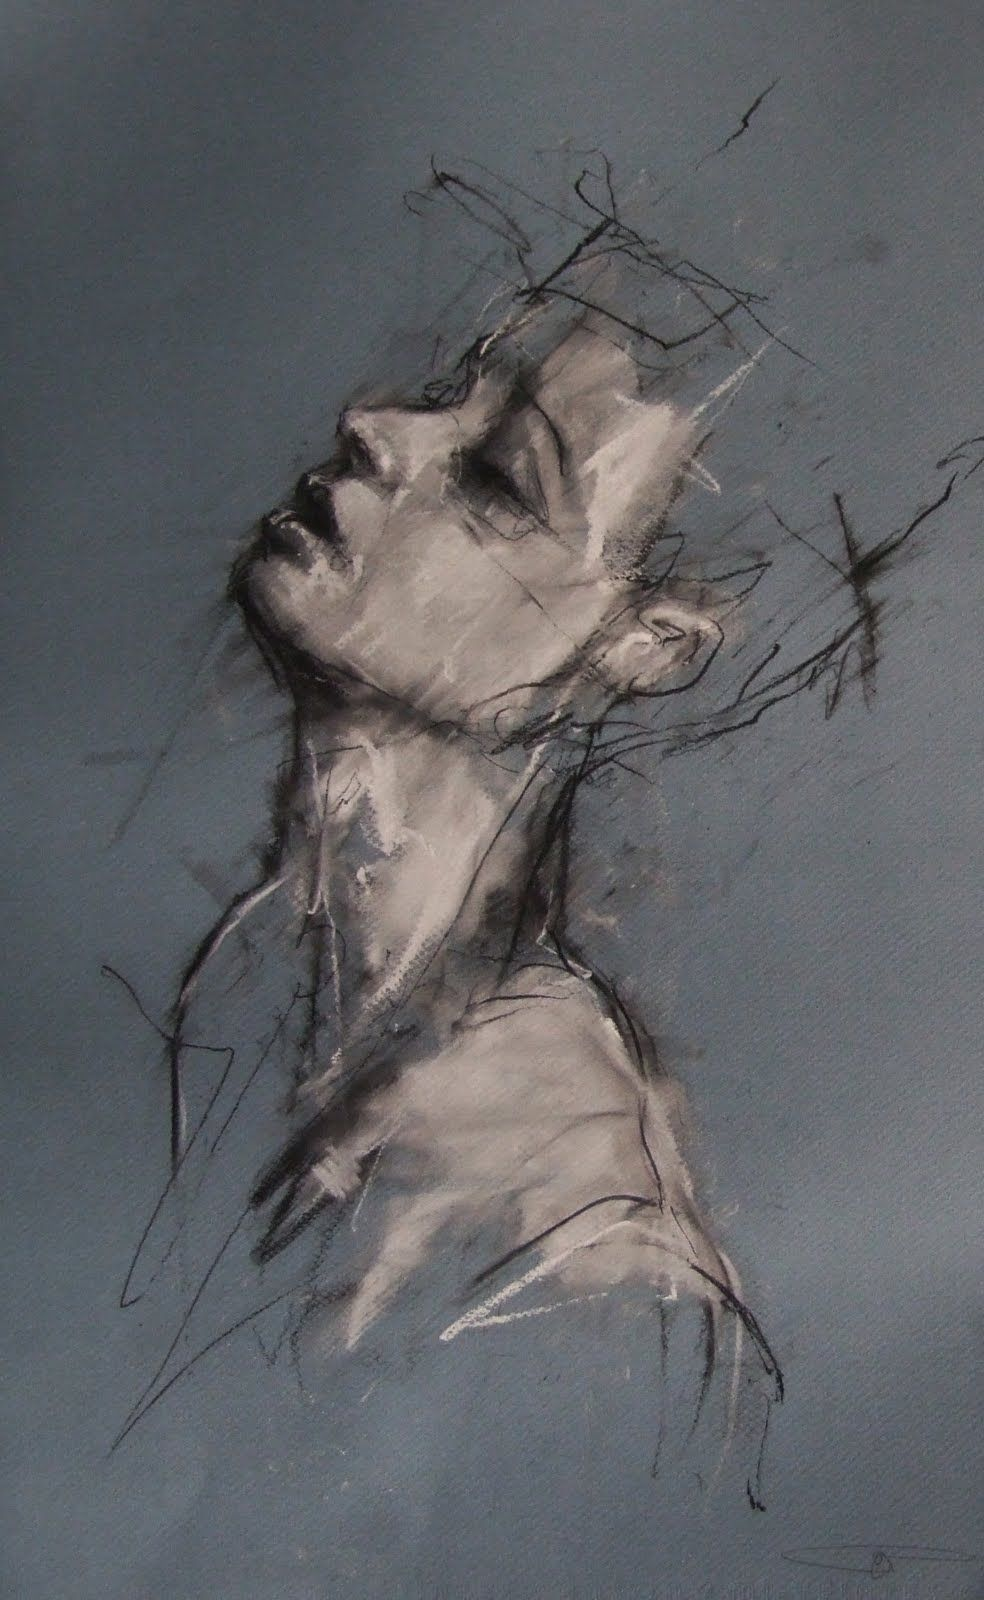 Guy Denning Structure Of The Human Body Quick Harsh Brush Strokes I Like The Neutral Colour Palette Portrait Art Art Drawings Life Drawing